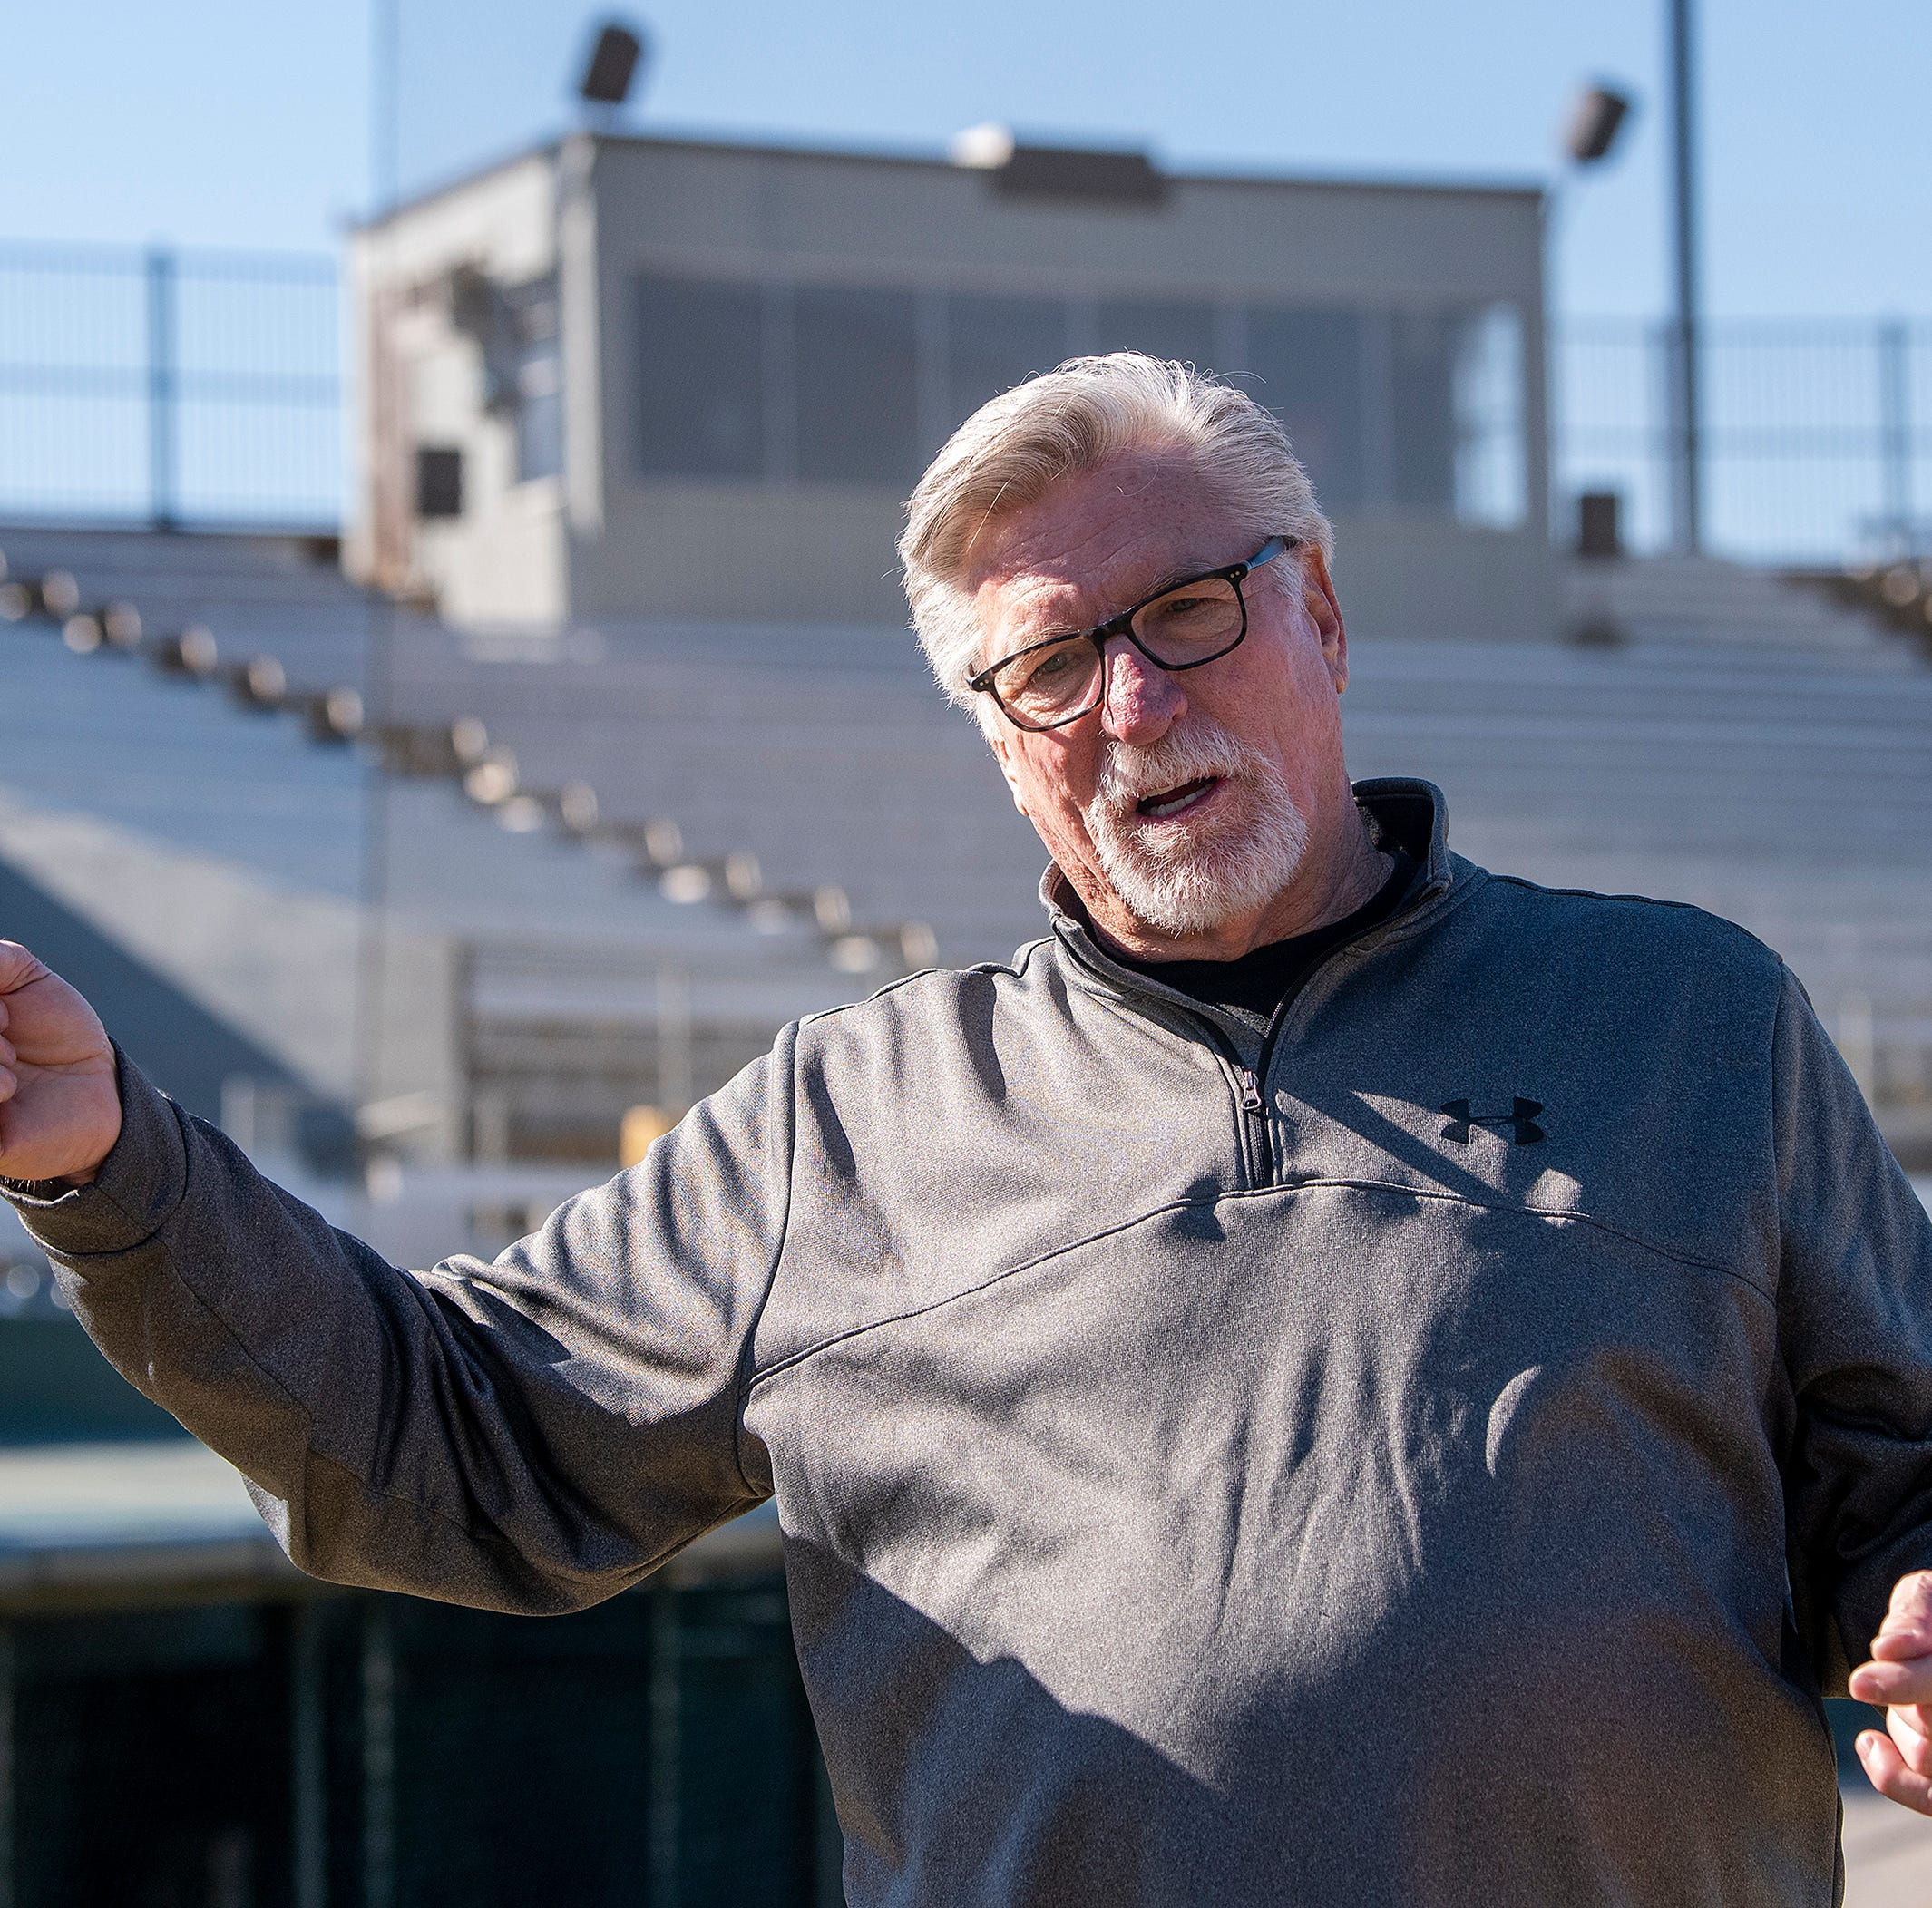 From Paterson to Hall of Fame: Jack Morris visits where his pro career began